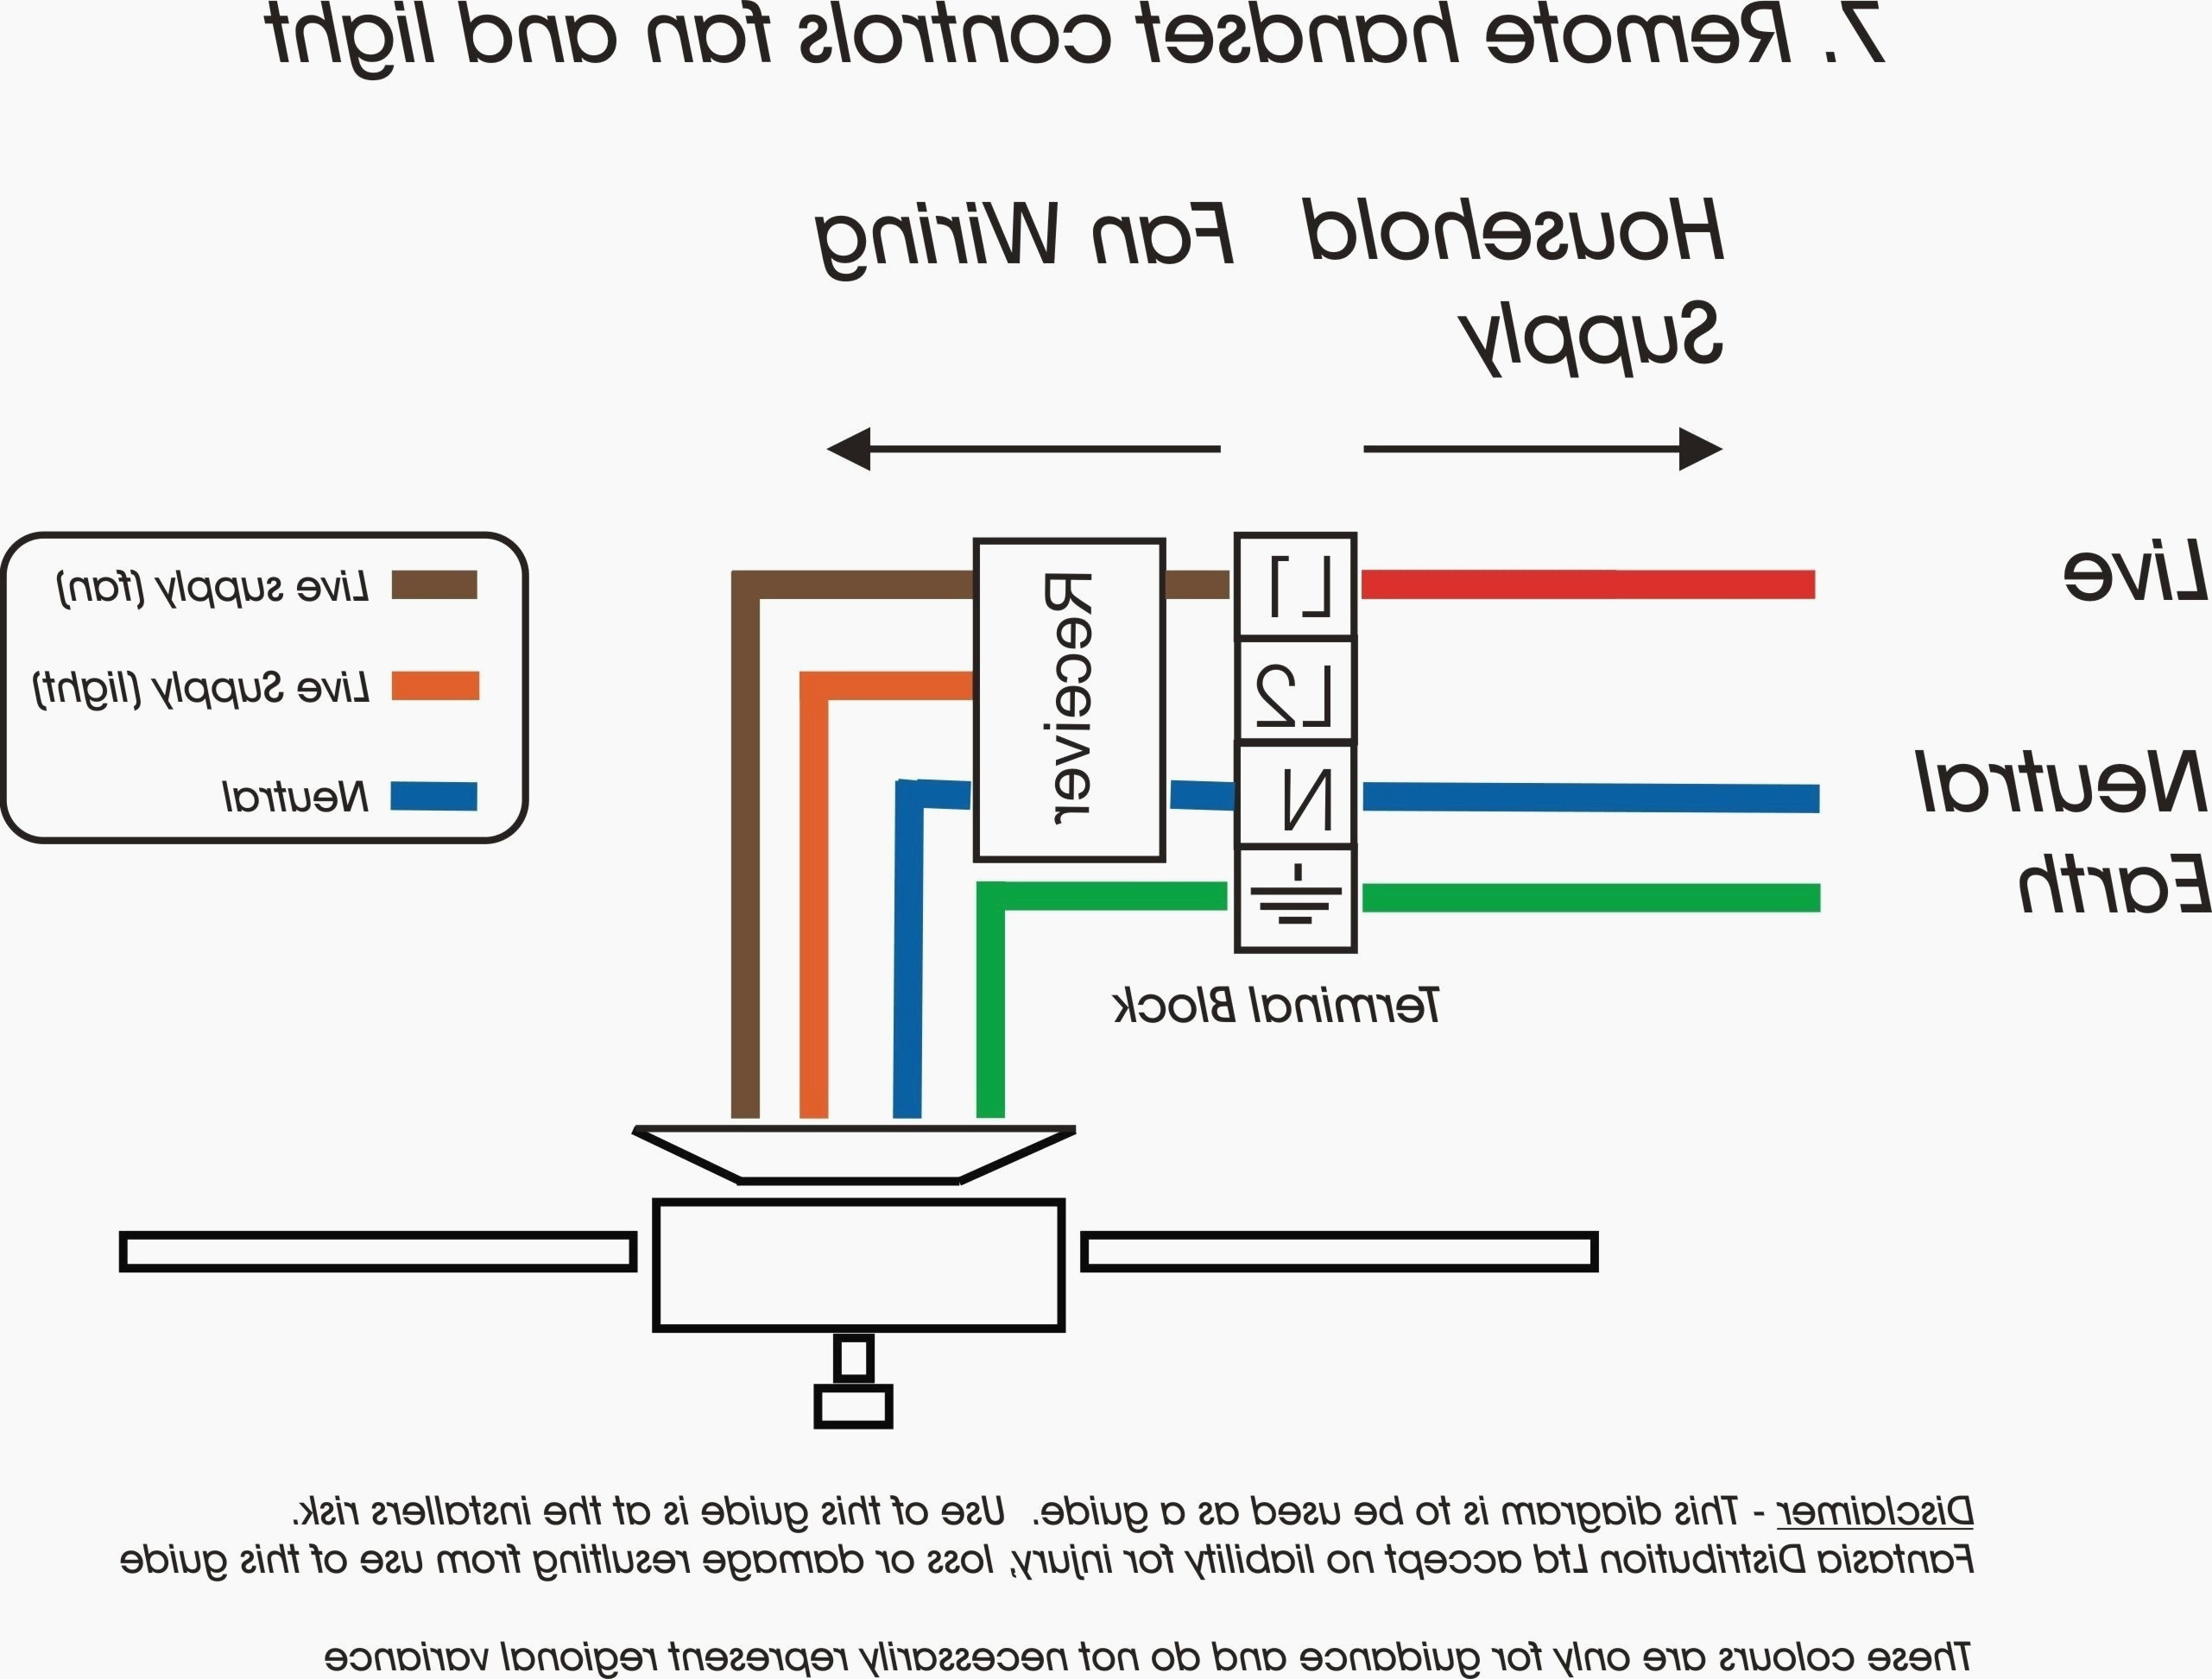 Aprilaire 400 Wiring Diagram | Wiring Diagram - Aprilaire Humidifier Wiring Diagram